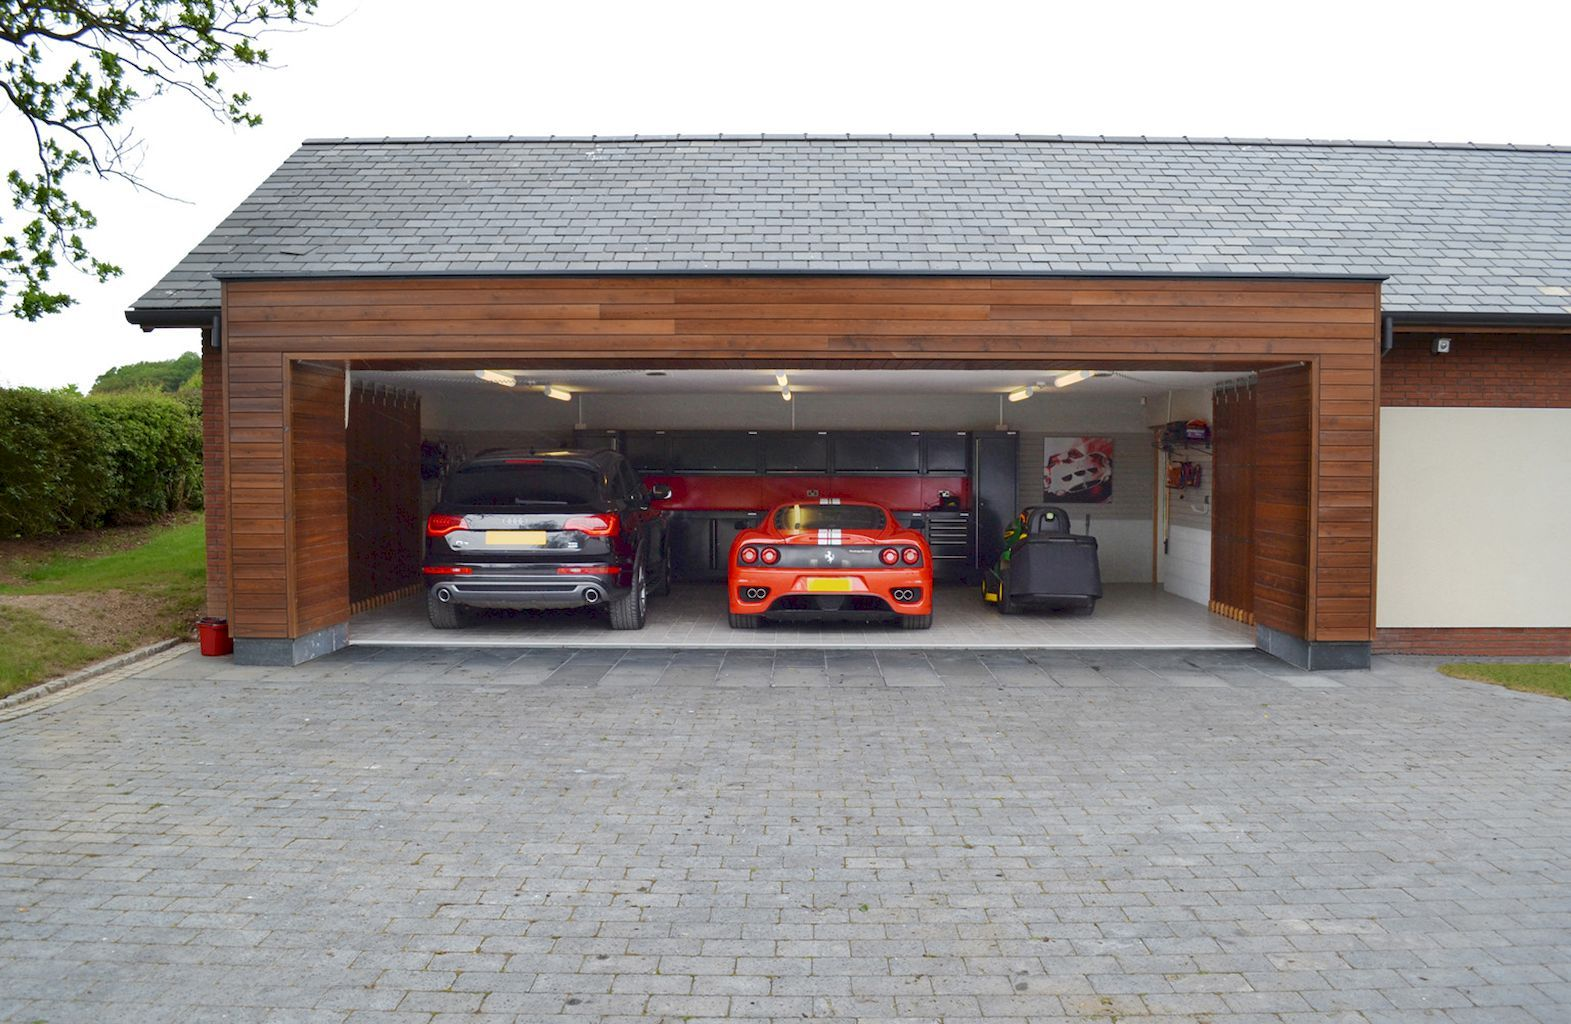 55 adorable modern carports garage designs ideas modern for Garage design ideas